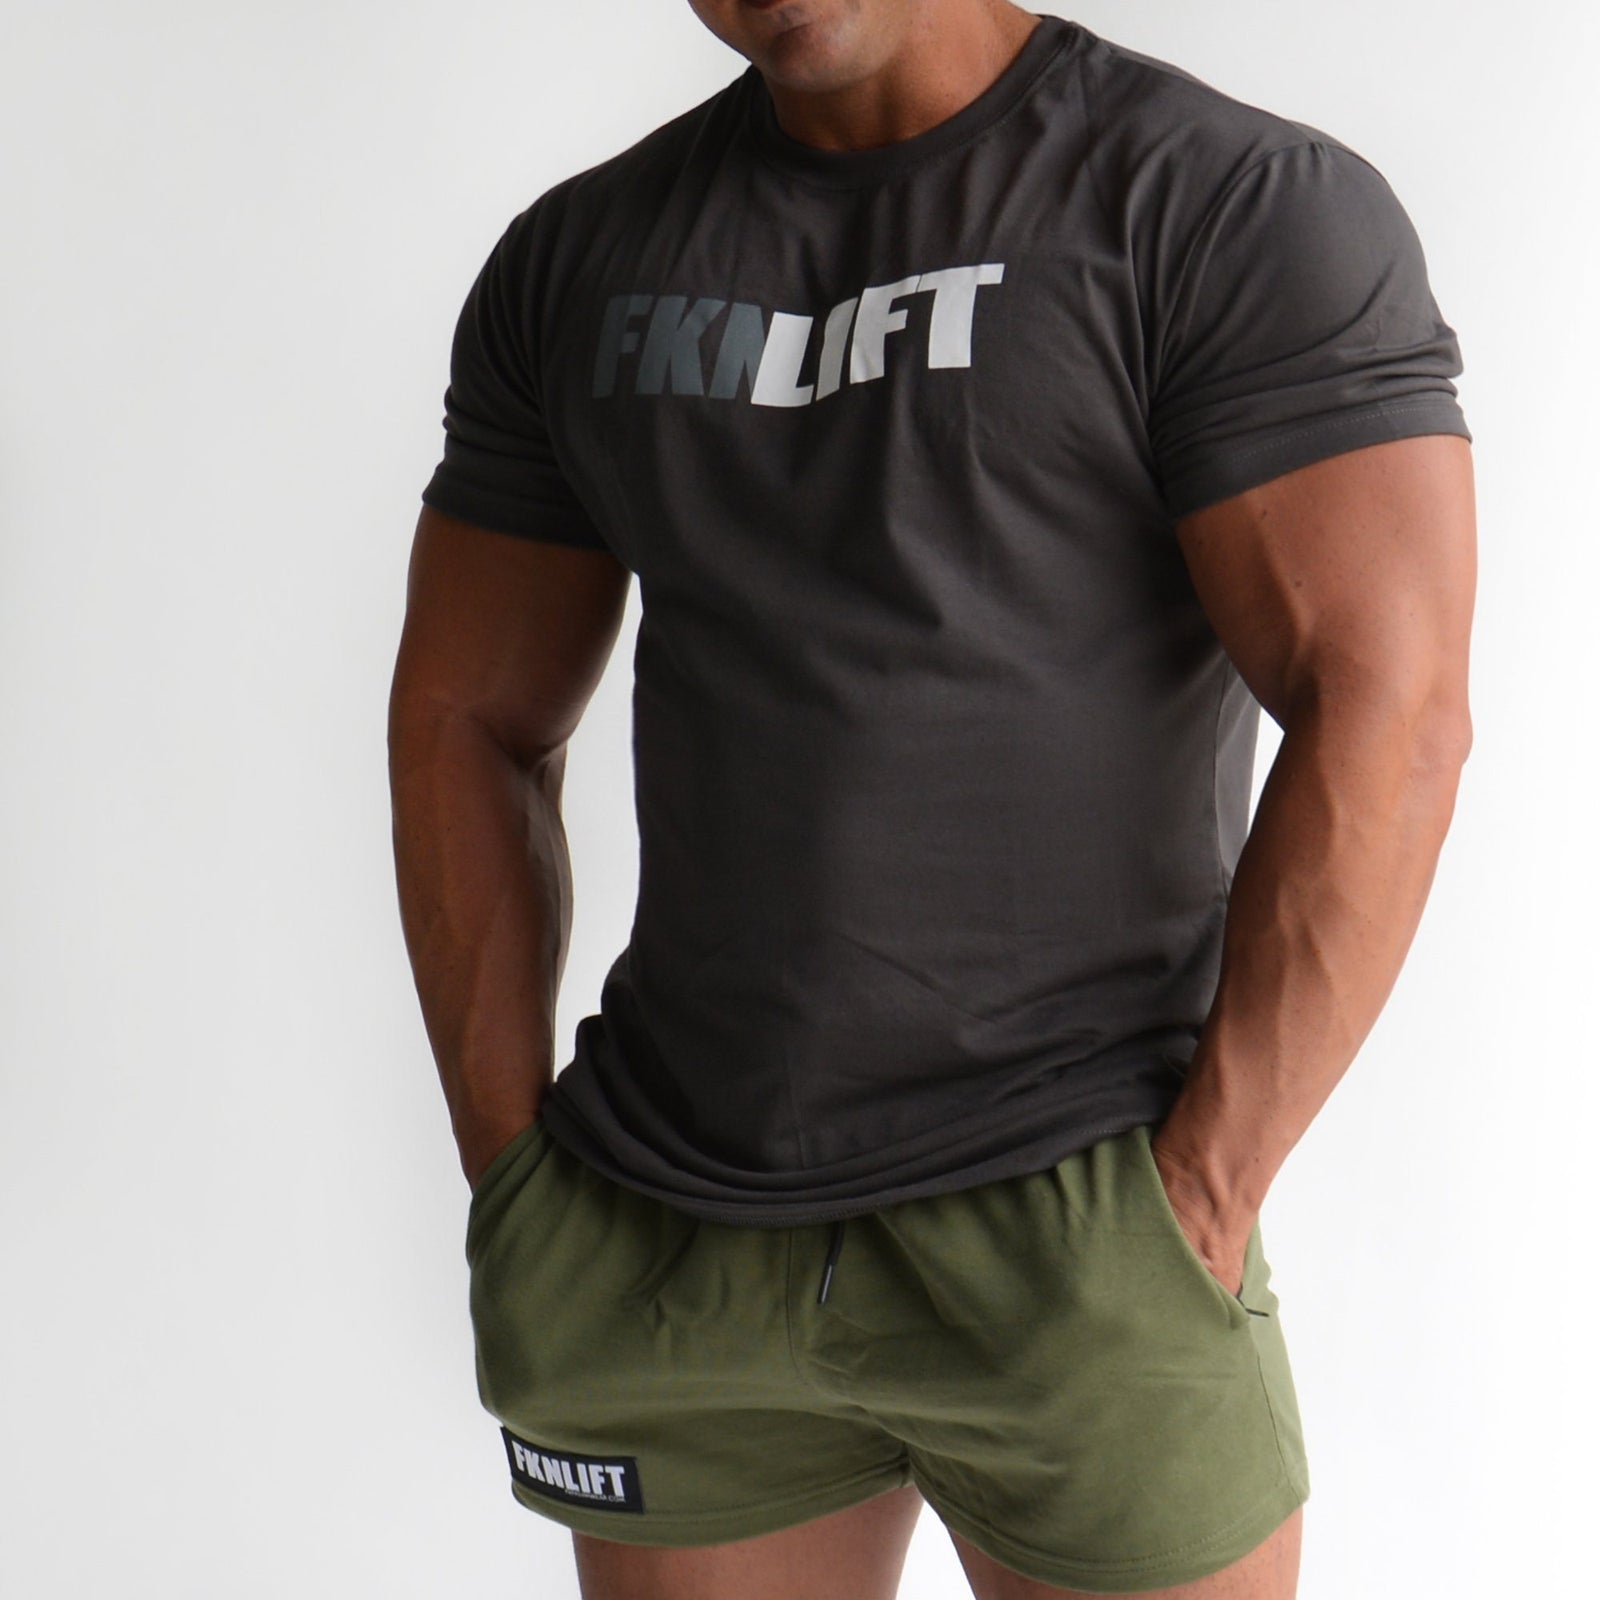 3aec182e521 FKN Gym Wear FKNLIFT Tee - Charcoal